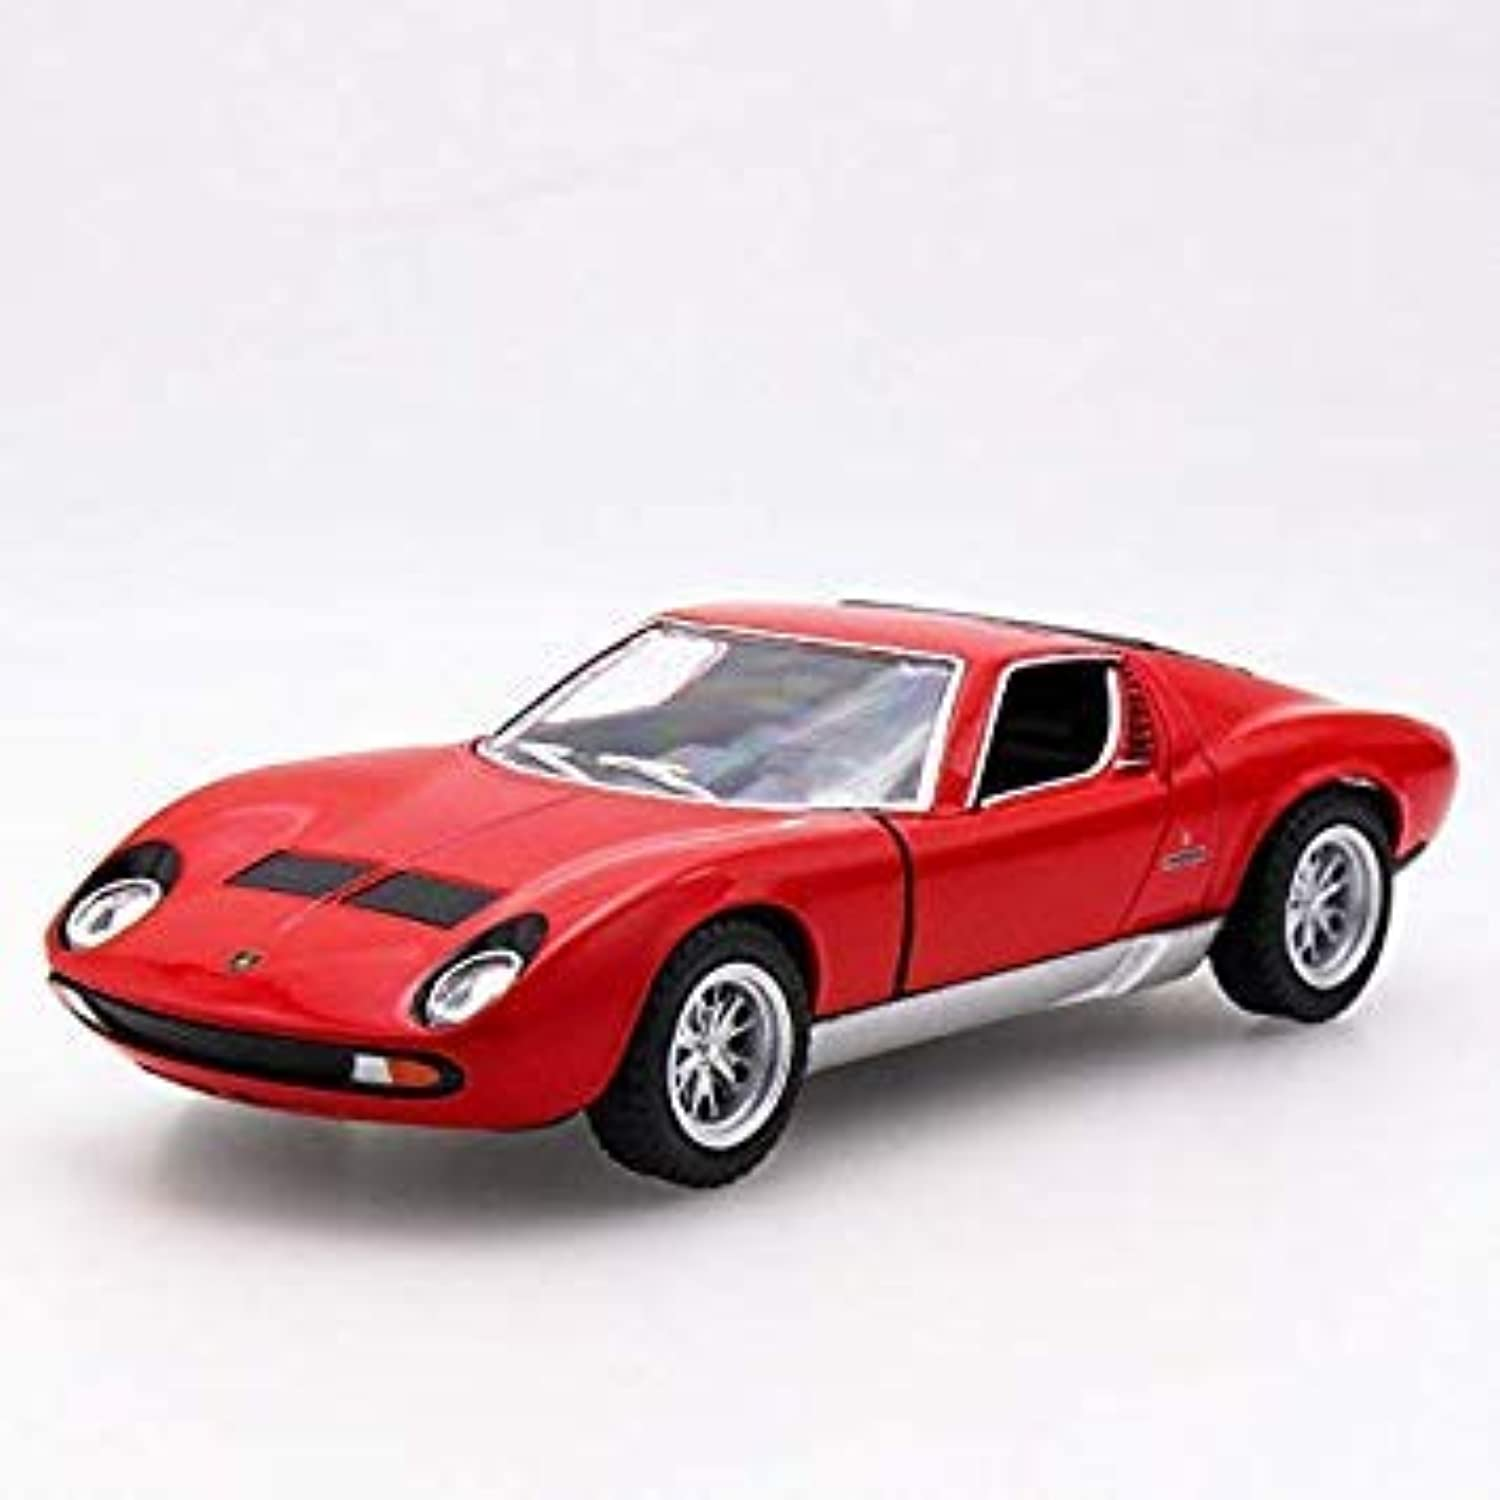 Hot Sell 1 32 P400 Diecast Alloy Metal Racing Car Mini Model Collection Model Pull Back Toys Wheel Car Gift for Boy Red